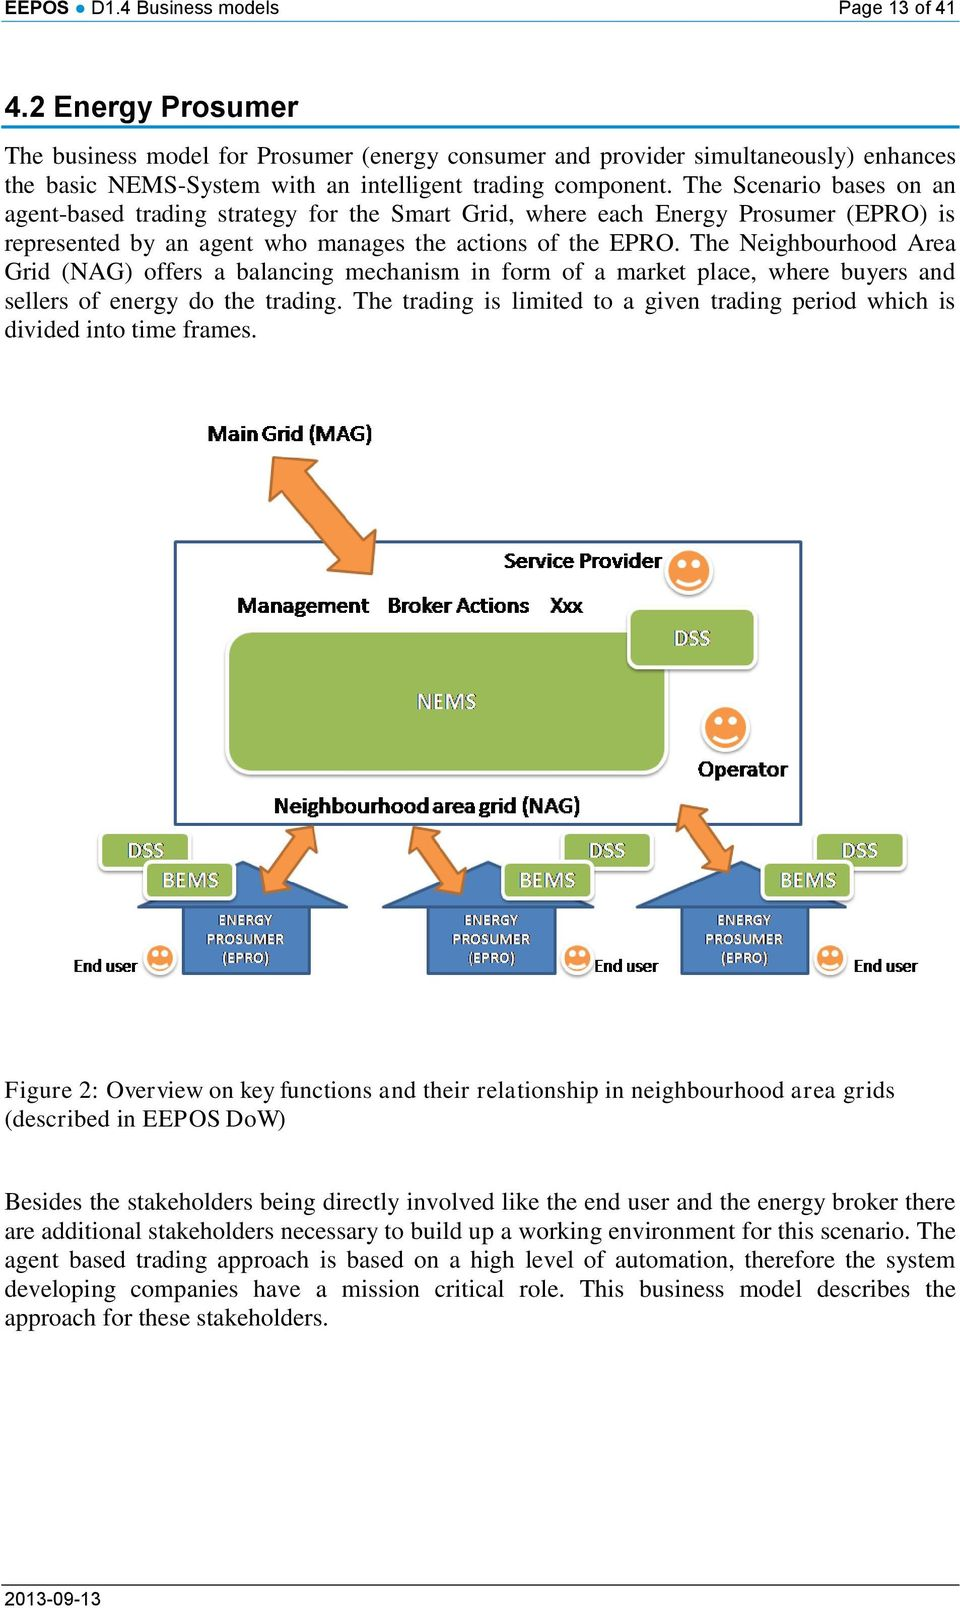 The Scenario bases on an agent-based trading strategy for the Smart Grid, where each Energy Prosumer (EPRO) is represented by an agent who manages the actions of the EPRO.